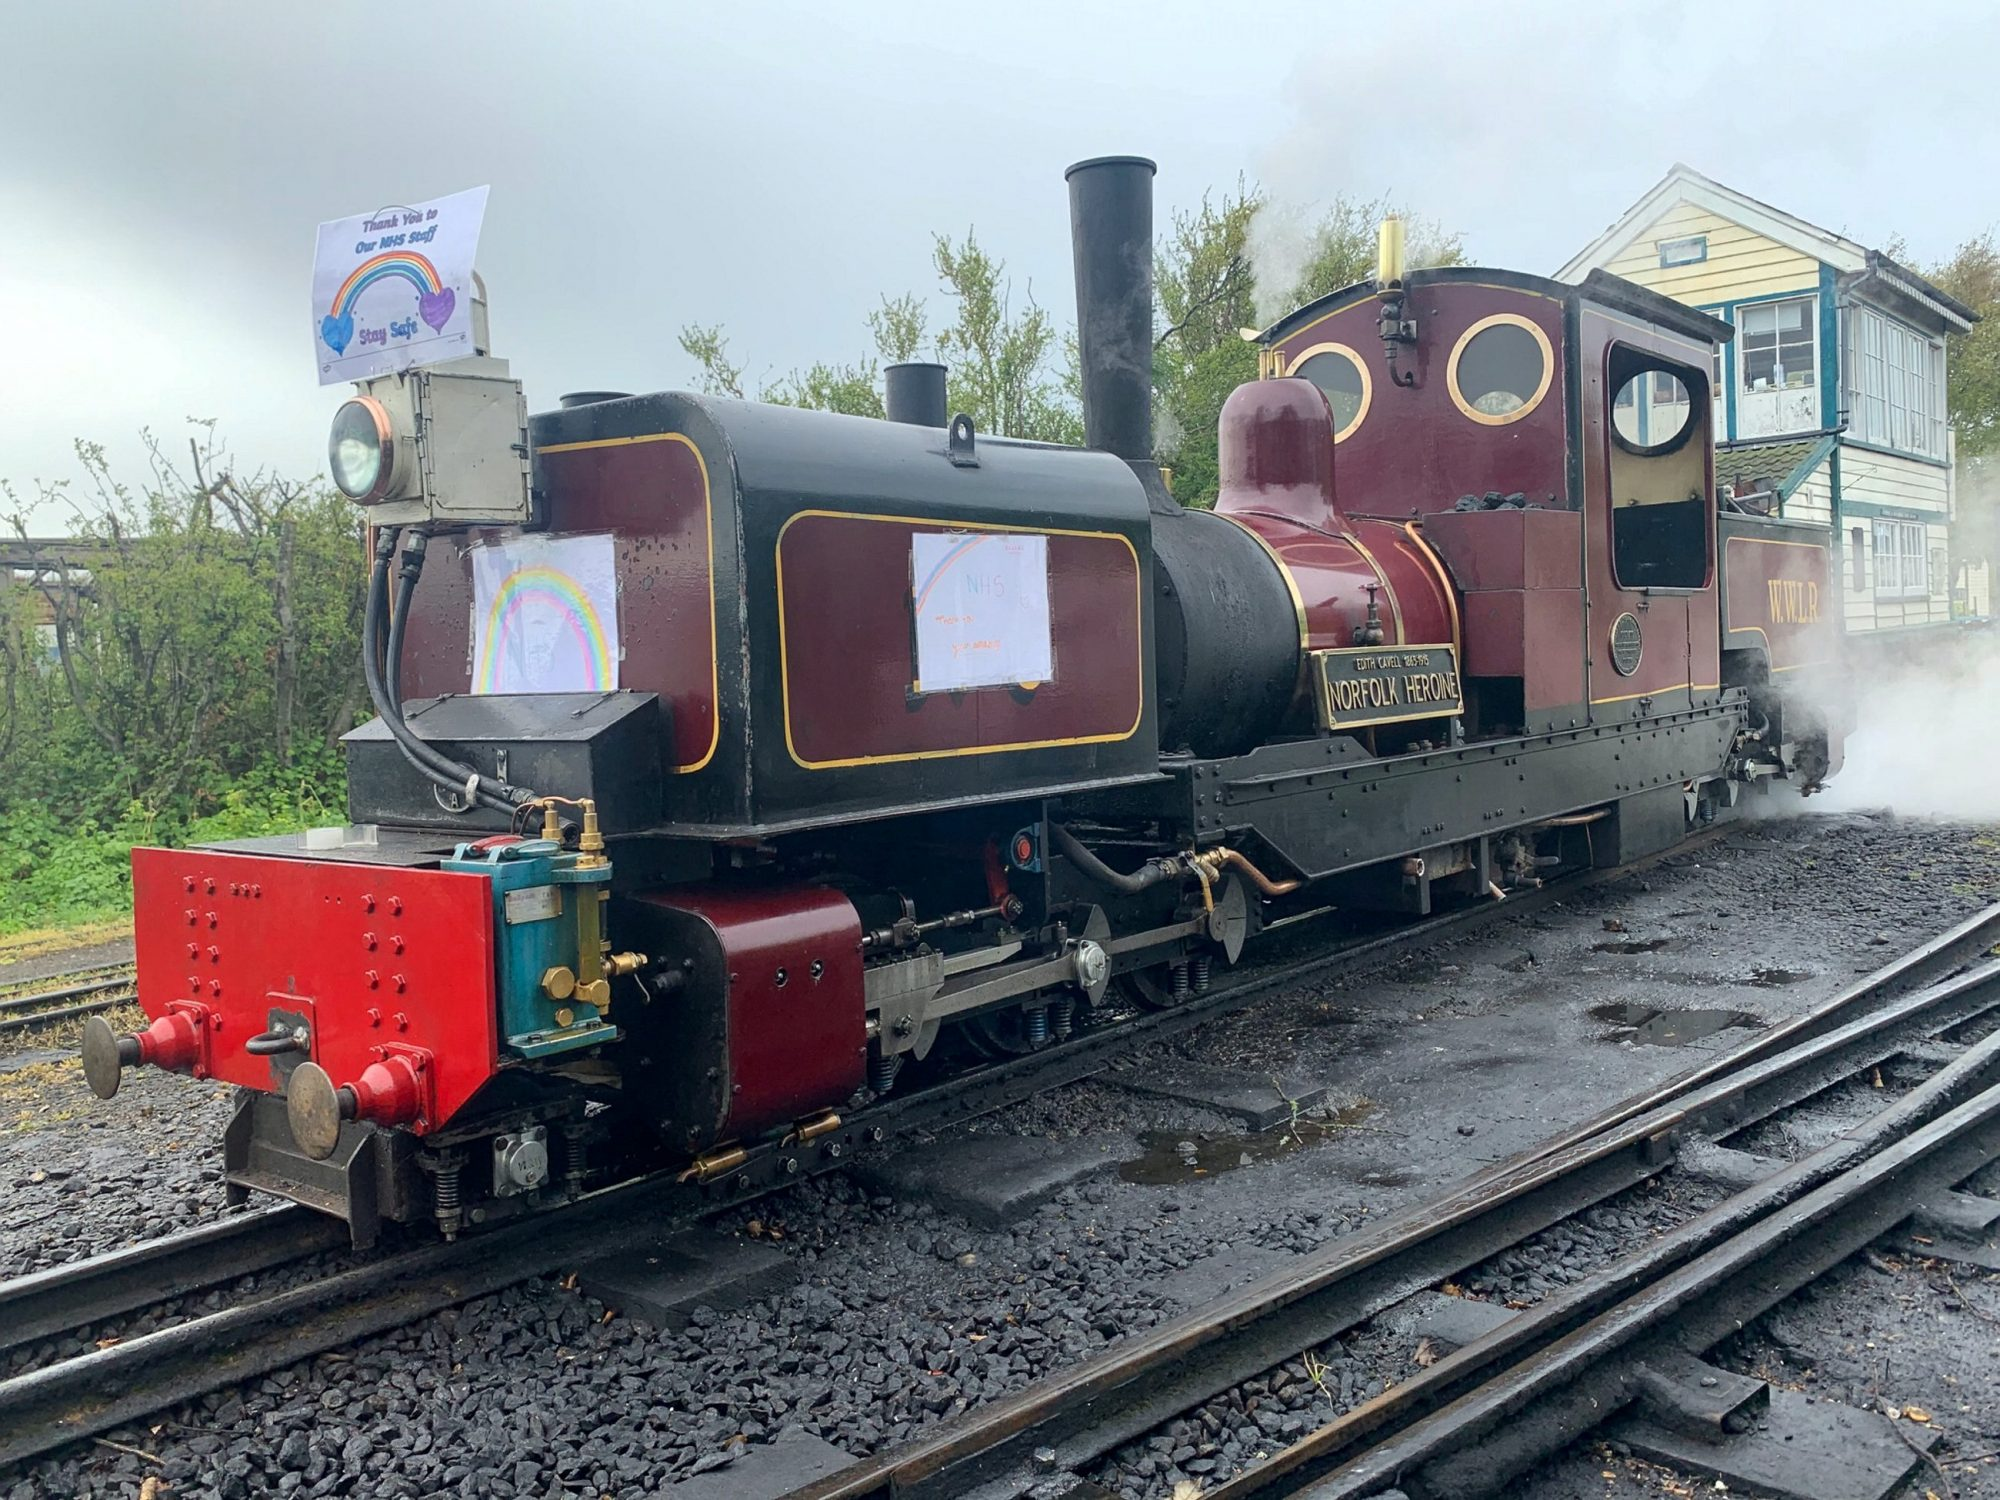 Matthew Armstrong, 29, has spent the last seven weeks essentially playing with his own life-sized train set while he lives at a popular steam railway tourist attraction.